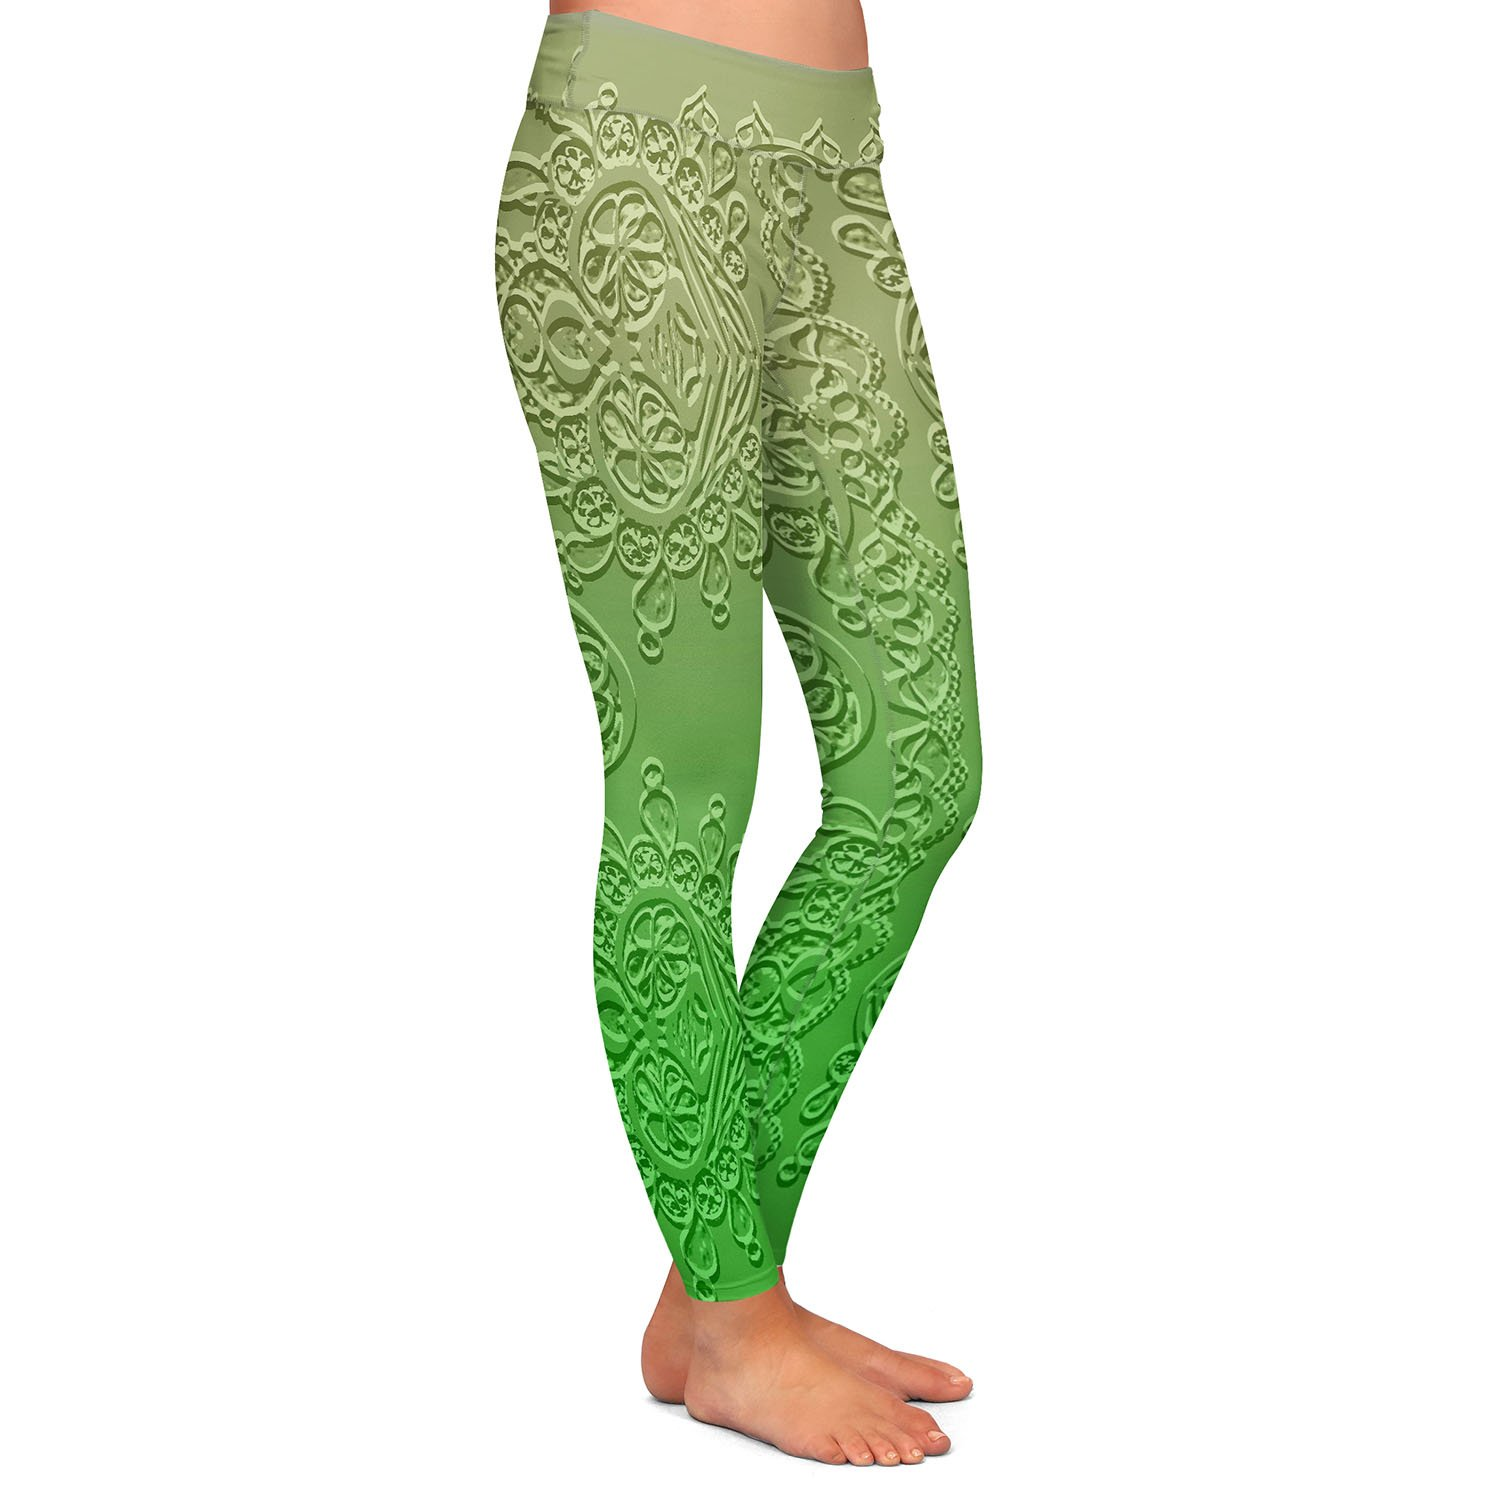 Grandmas Lace Online Lime Athletic Yoga Leggings from DiaNoche Designs by Susie Kunzelman